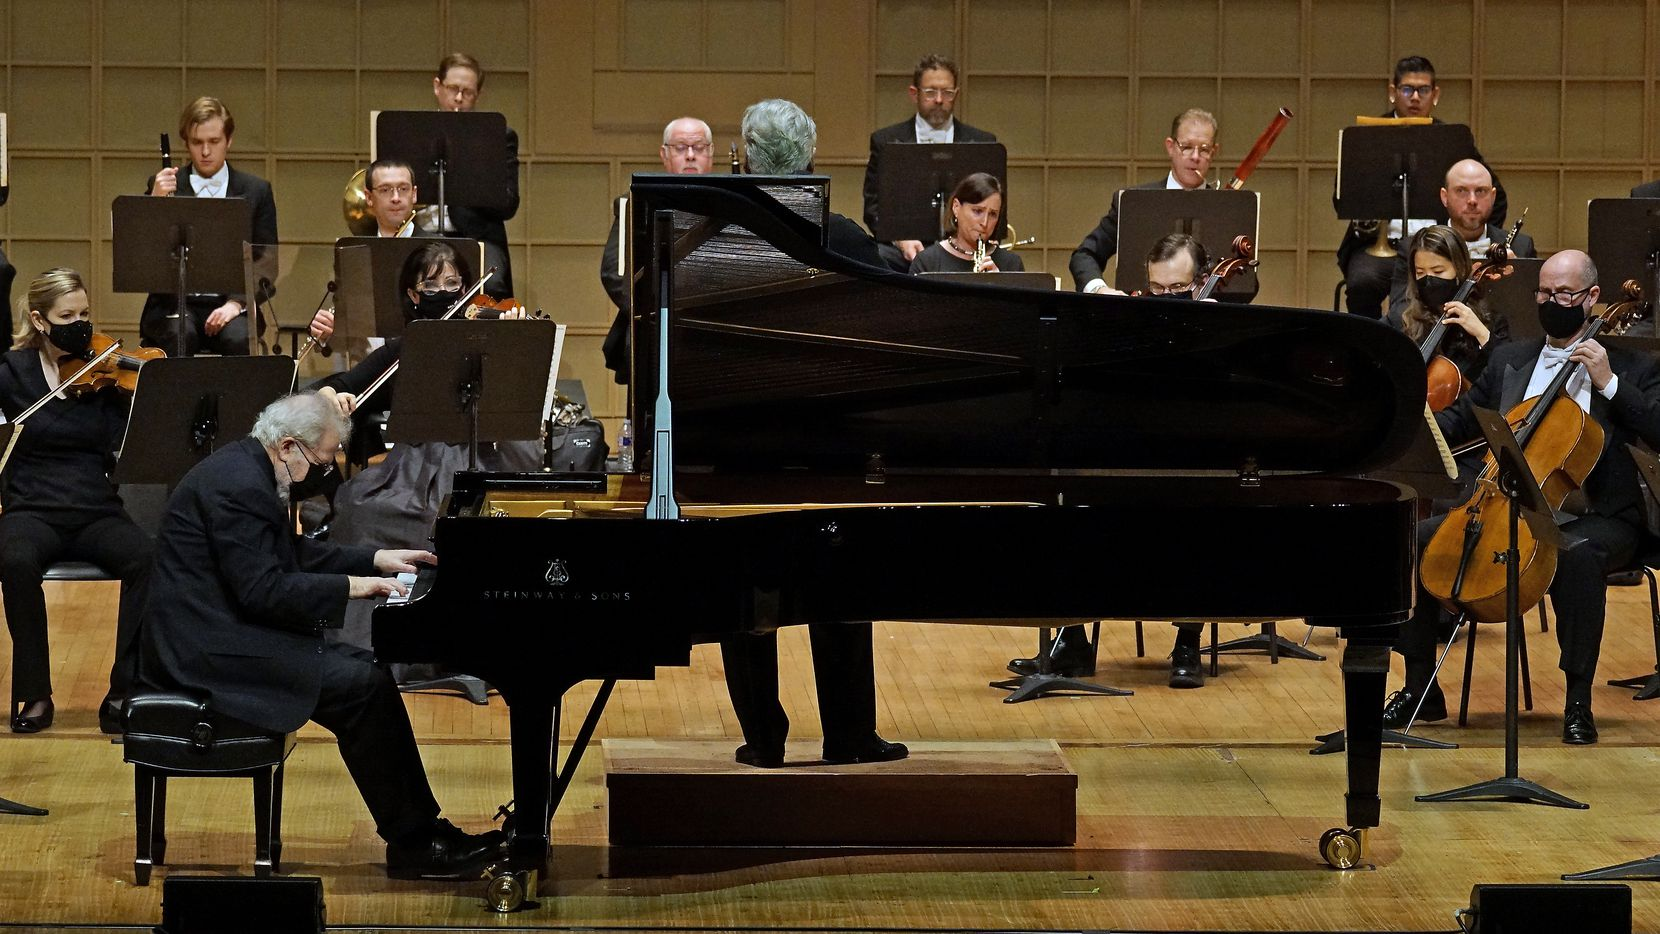 Guest pianist Emanuel Ax performs with the Dallas Symphony Orchestra at the Meyerson Symphony Center in Dallas on Dec. 17, 2020.  (Lawrence Jenkins/Special Contributor)